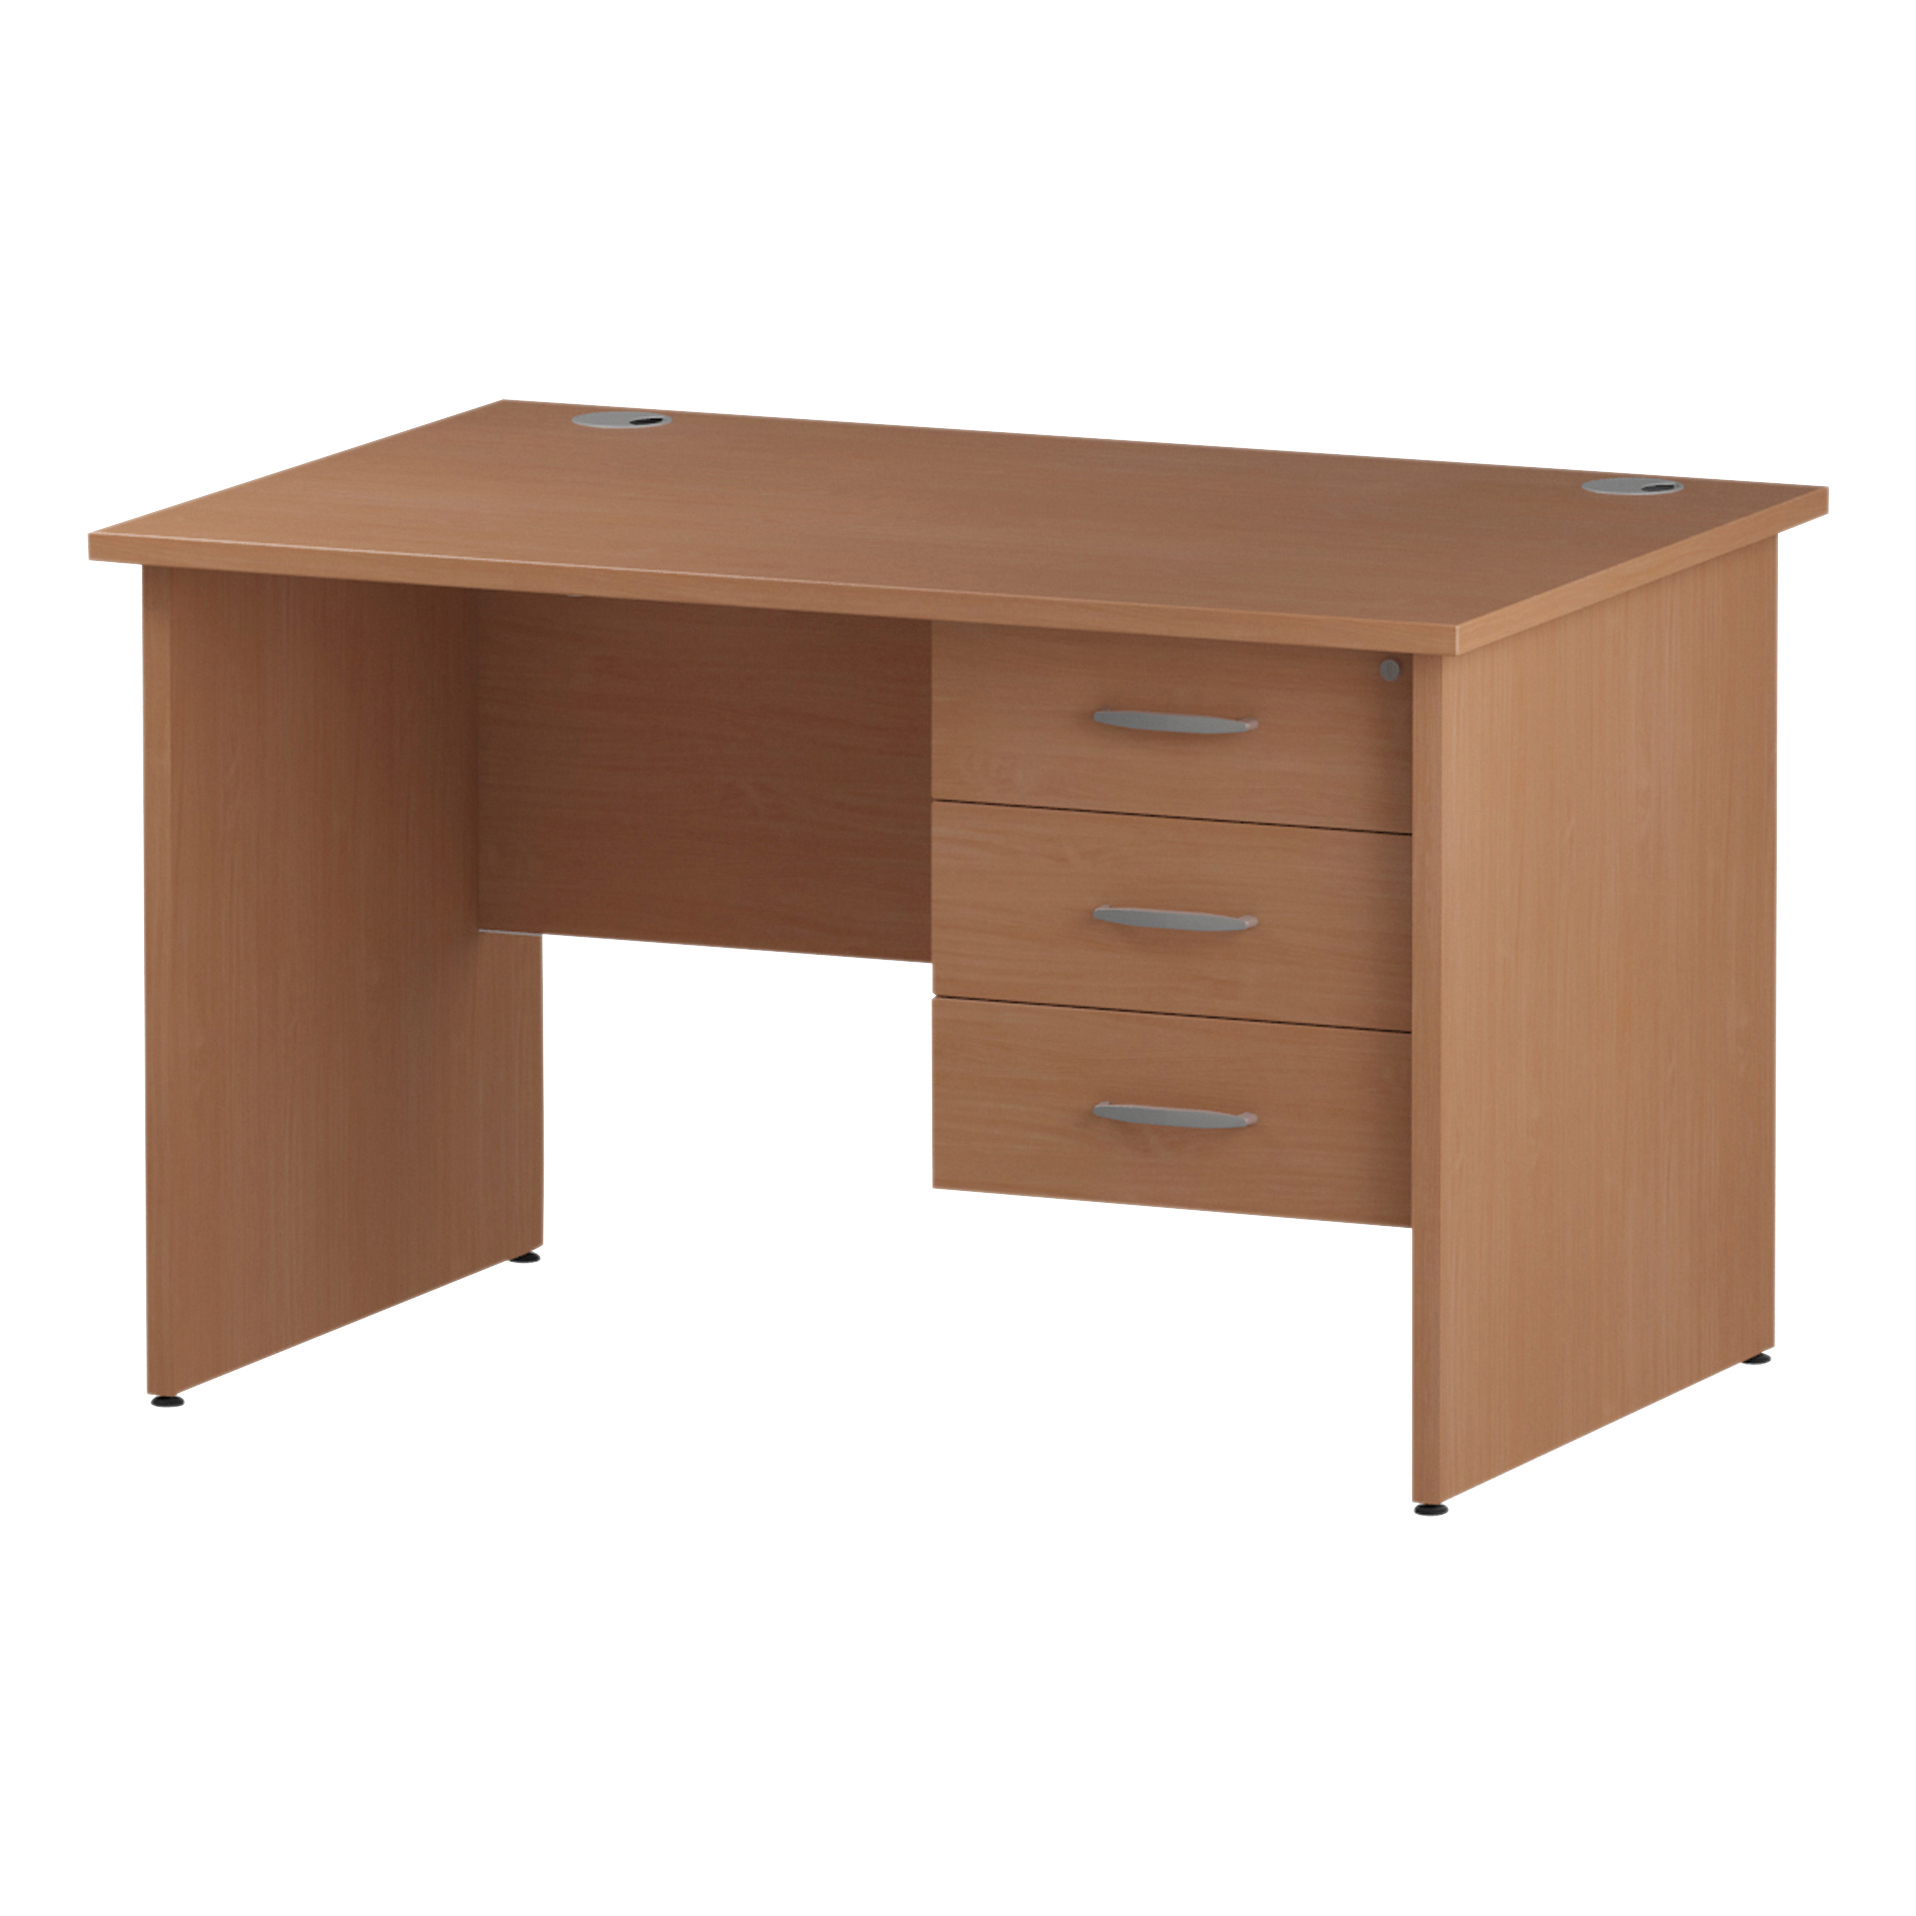 Trexus Rectangular Desk Panel End Leg 1200x800mm Fixed Pedestal 3 Drawers Beech Ref I001737